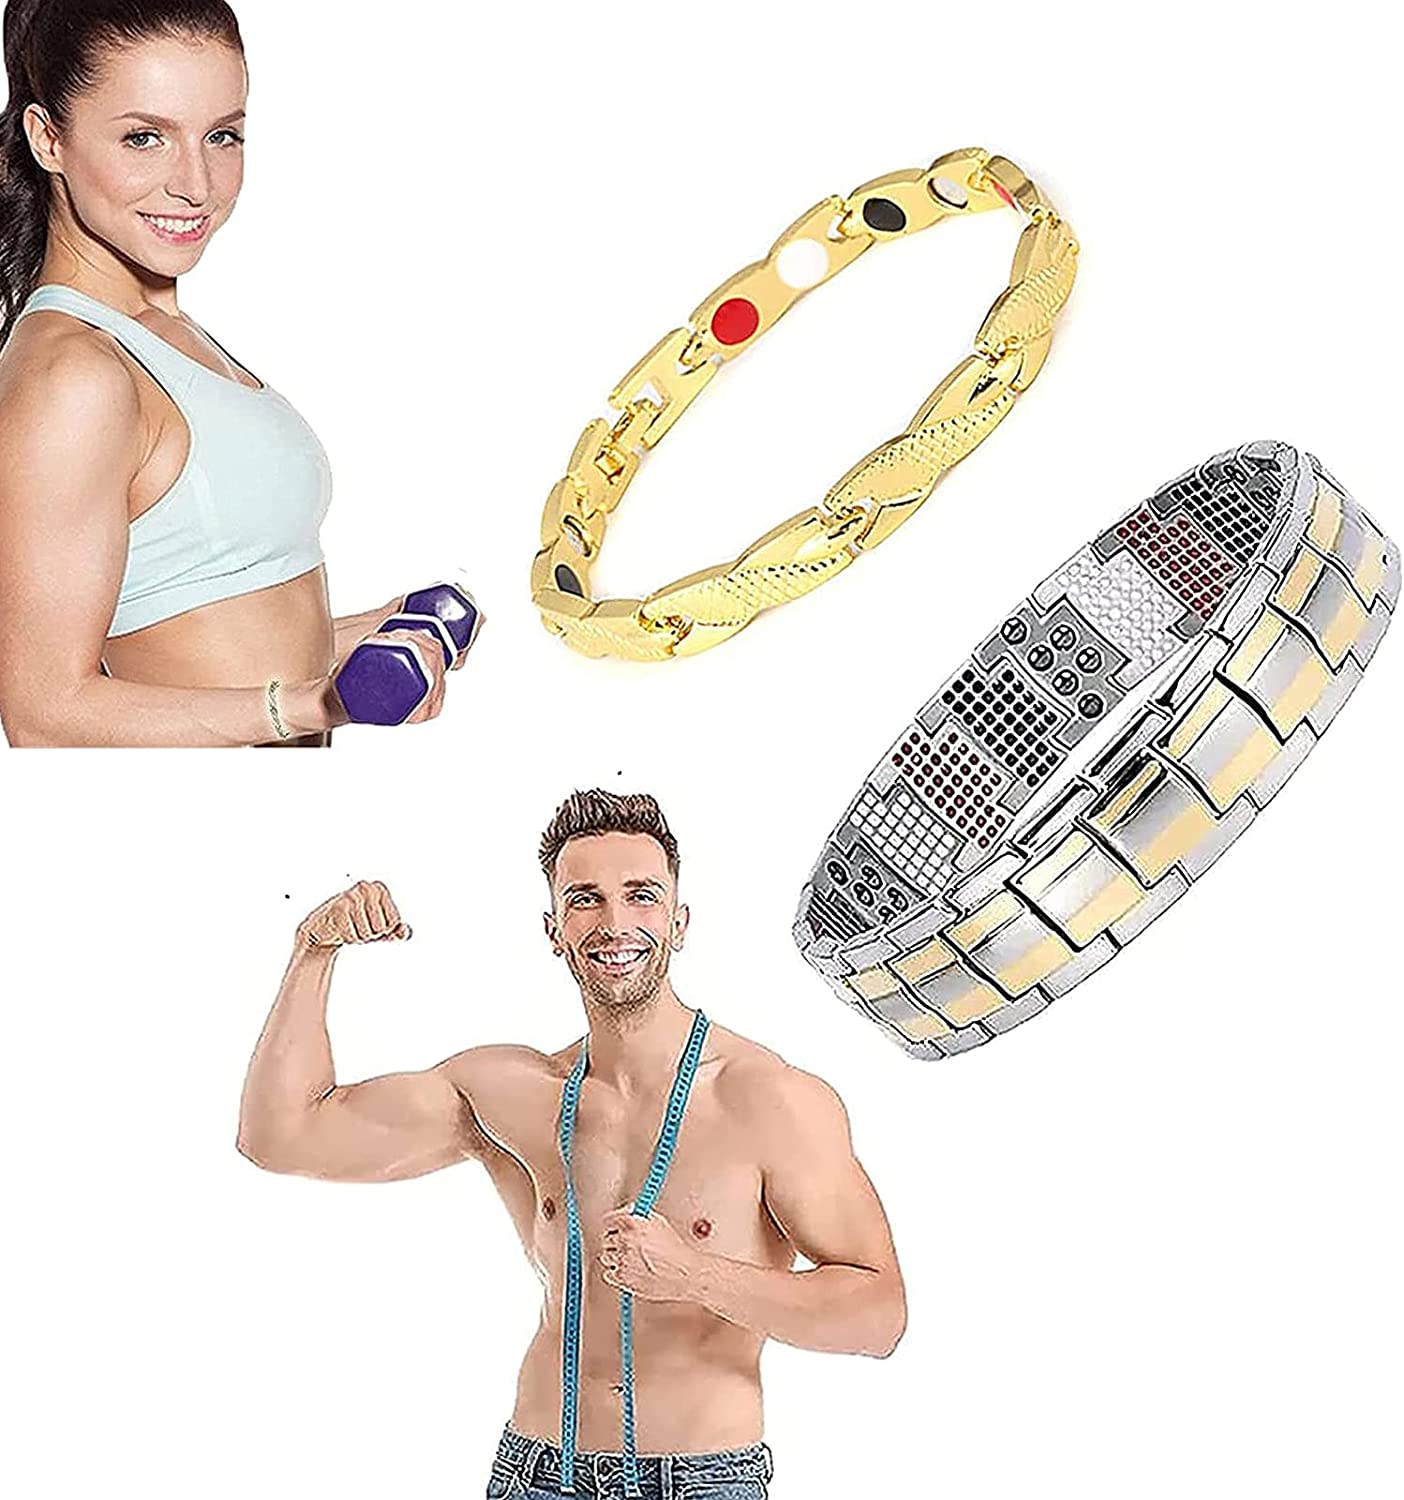 2Pcs Magnetotherapy Fit Plus Bracelet Ultra T Magnetic Strength Super sale New item period limited